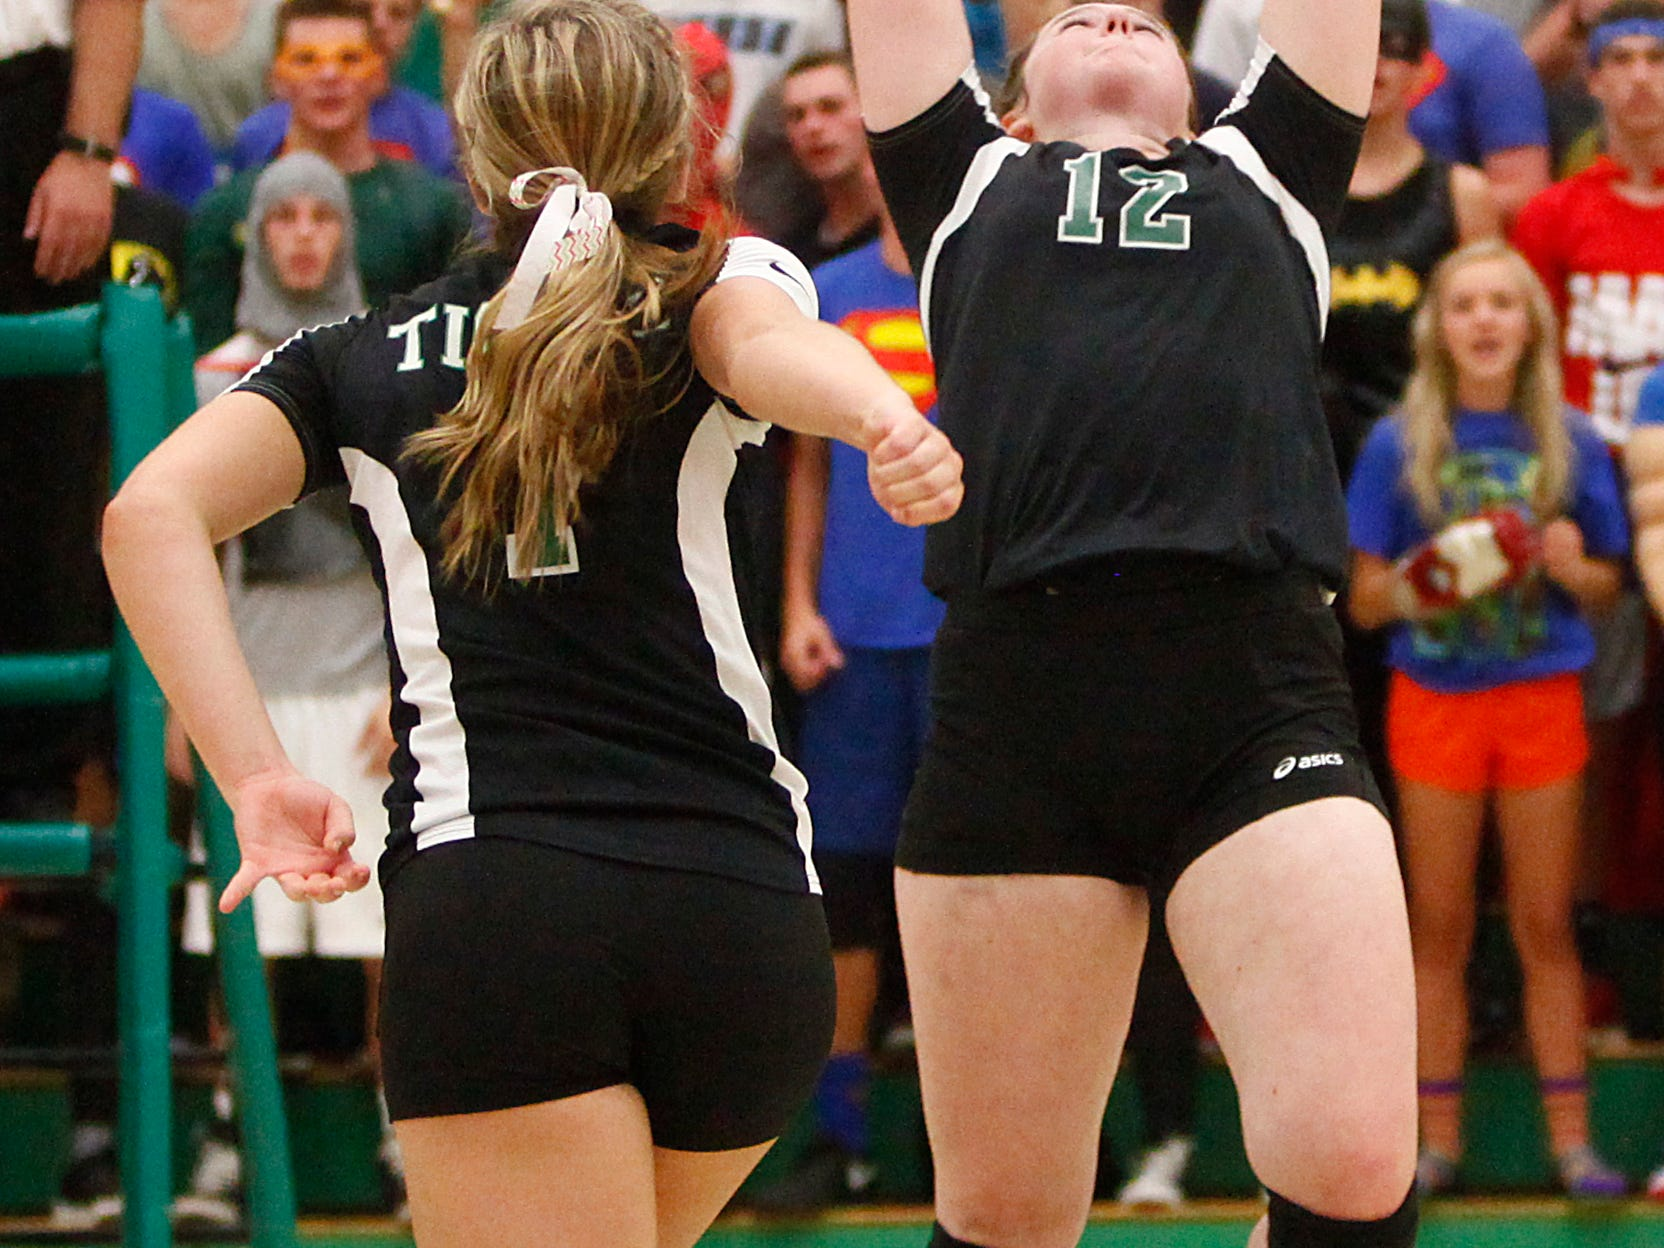 Yorktown's Mimi Arrington sets the ball during the opening set against Central on Thursday. Yorktown won the five-set match 3-2.